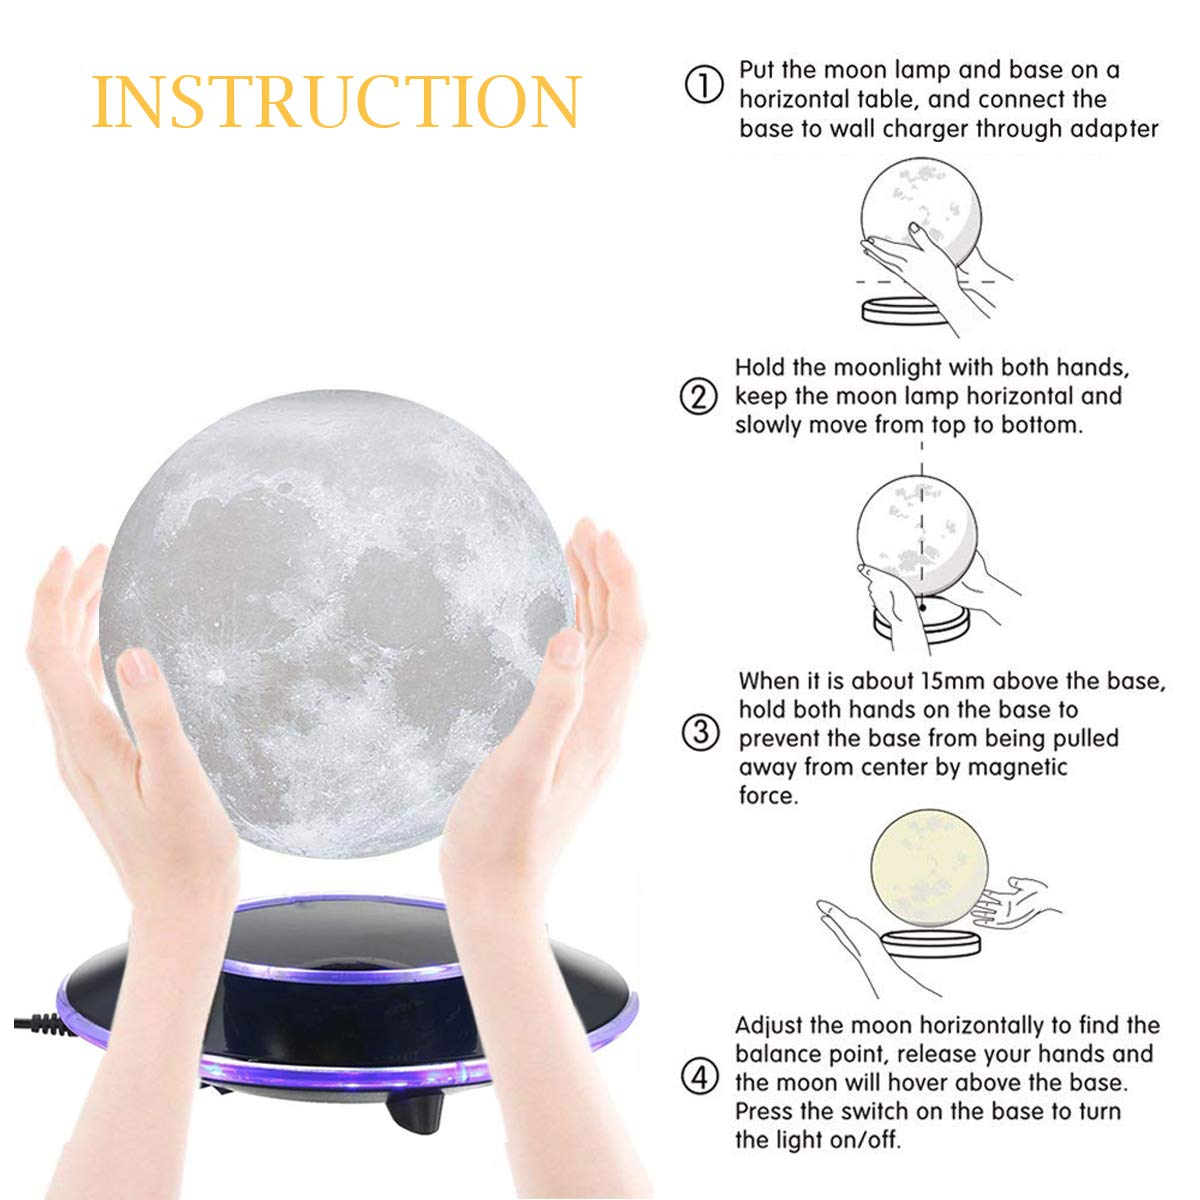 mono living Magnetic Levitating Moon Lamp Night Light 3D Print LED Auto Rotate Birthday Father's Day Gift Gift for Him Her Mother Family Couple Daughter TeenGirl Boyfriend Girlfriend 5.9'' by mono living (Image #3)